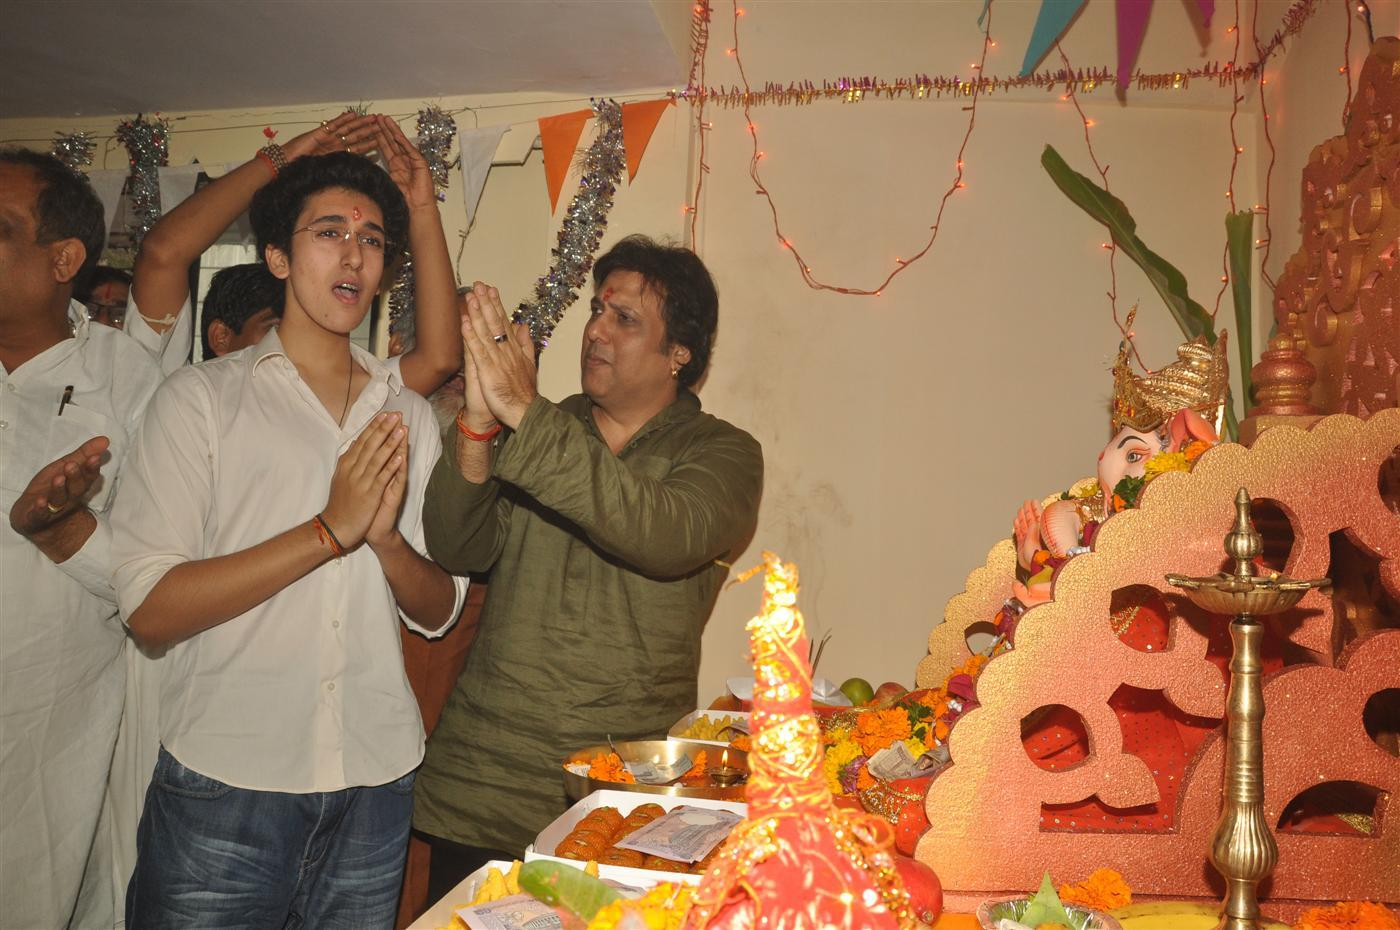 Decoration For Puja At Home Govinda With His Son Arjun Singh Performing Aarti At His